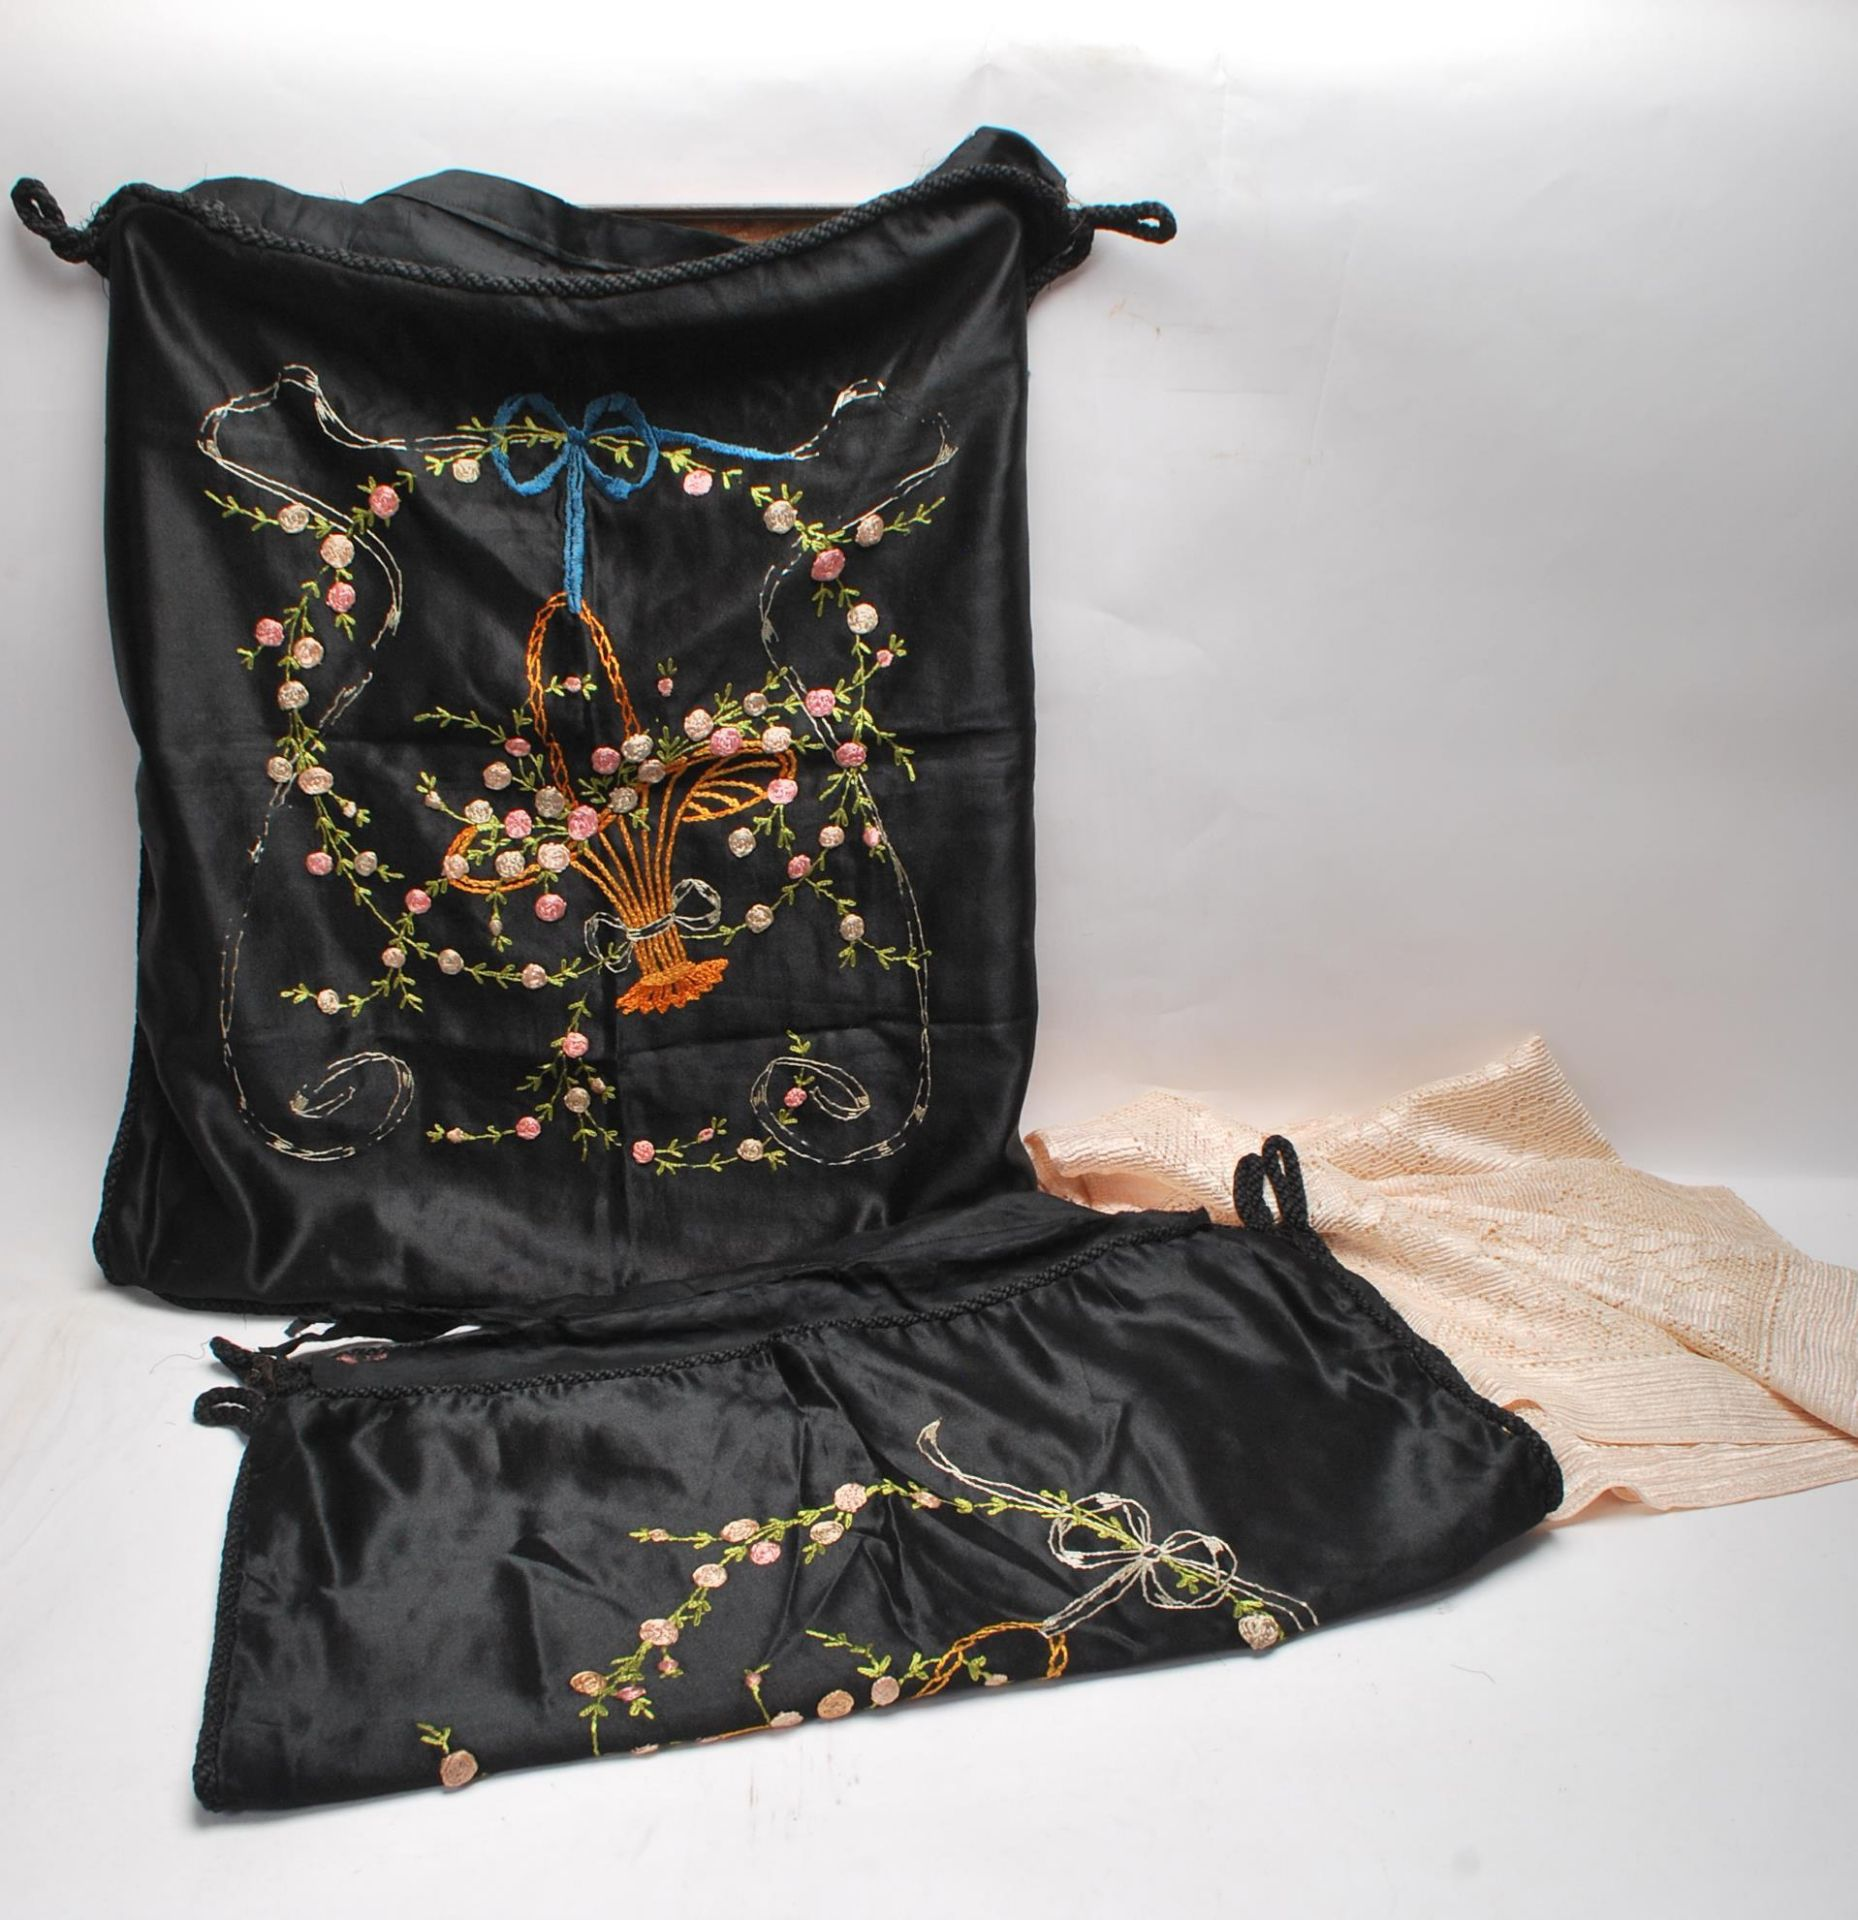 19TH CENTURY VICTORIAN TABLECLOTH AND PILLOW CASES